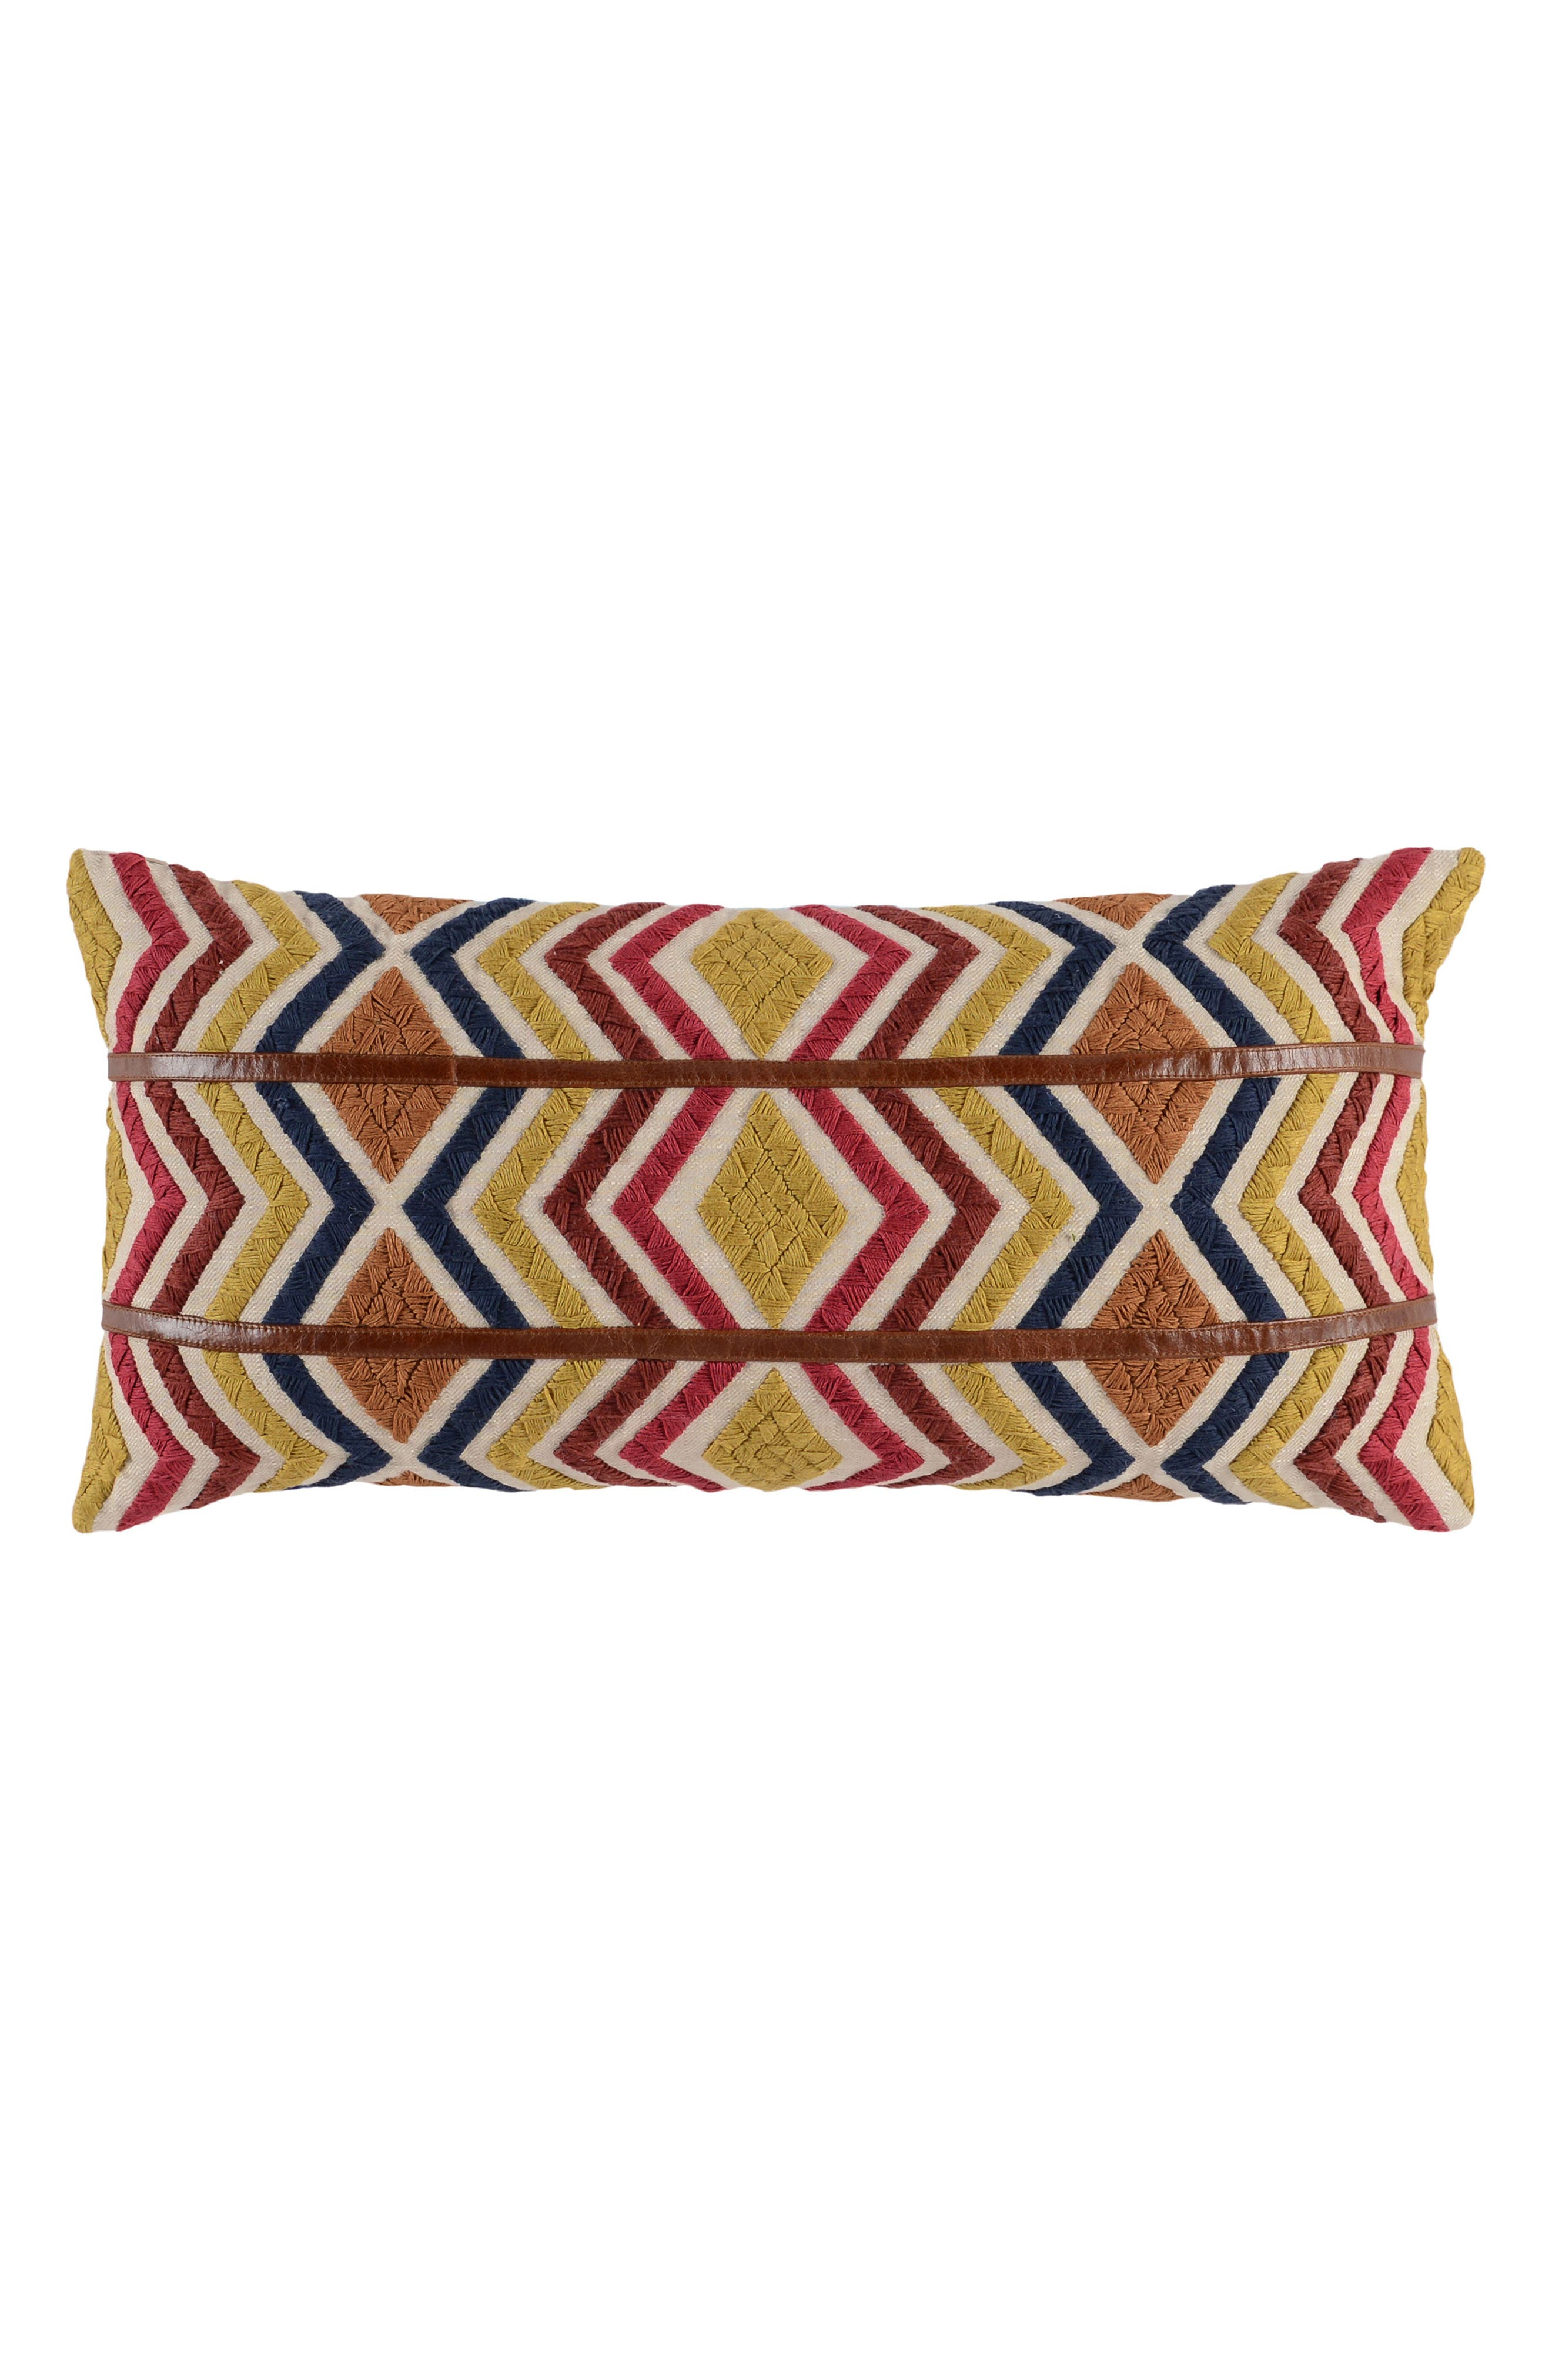 Alta Accent Pillow,                         Main,                         color, YELLOW/ BROWN/ RED